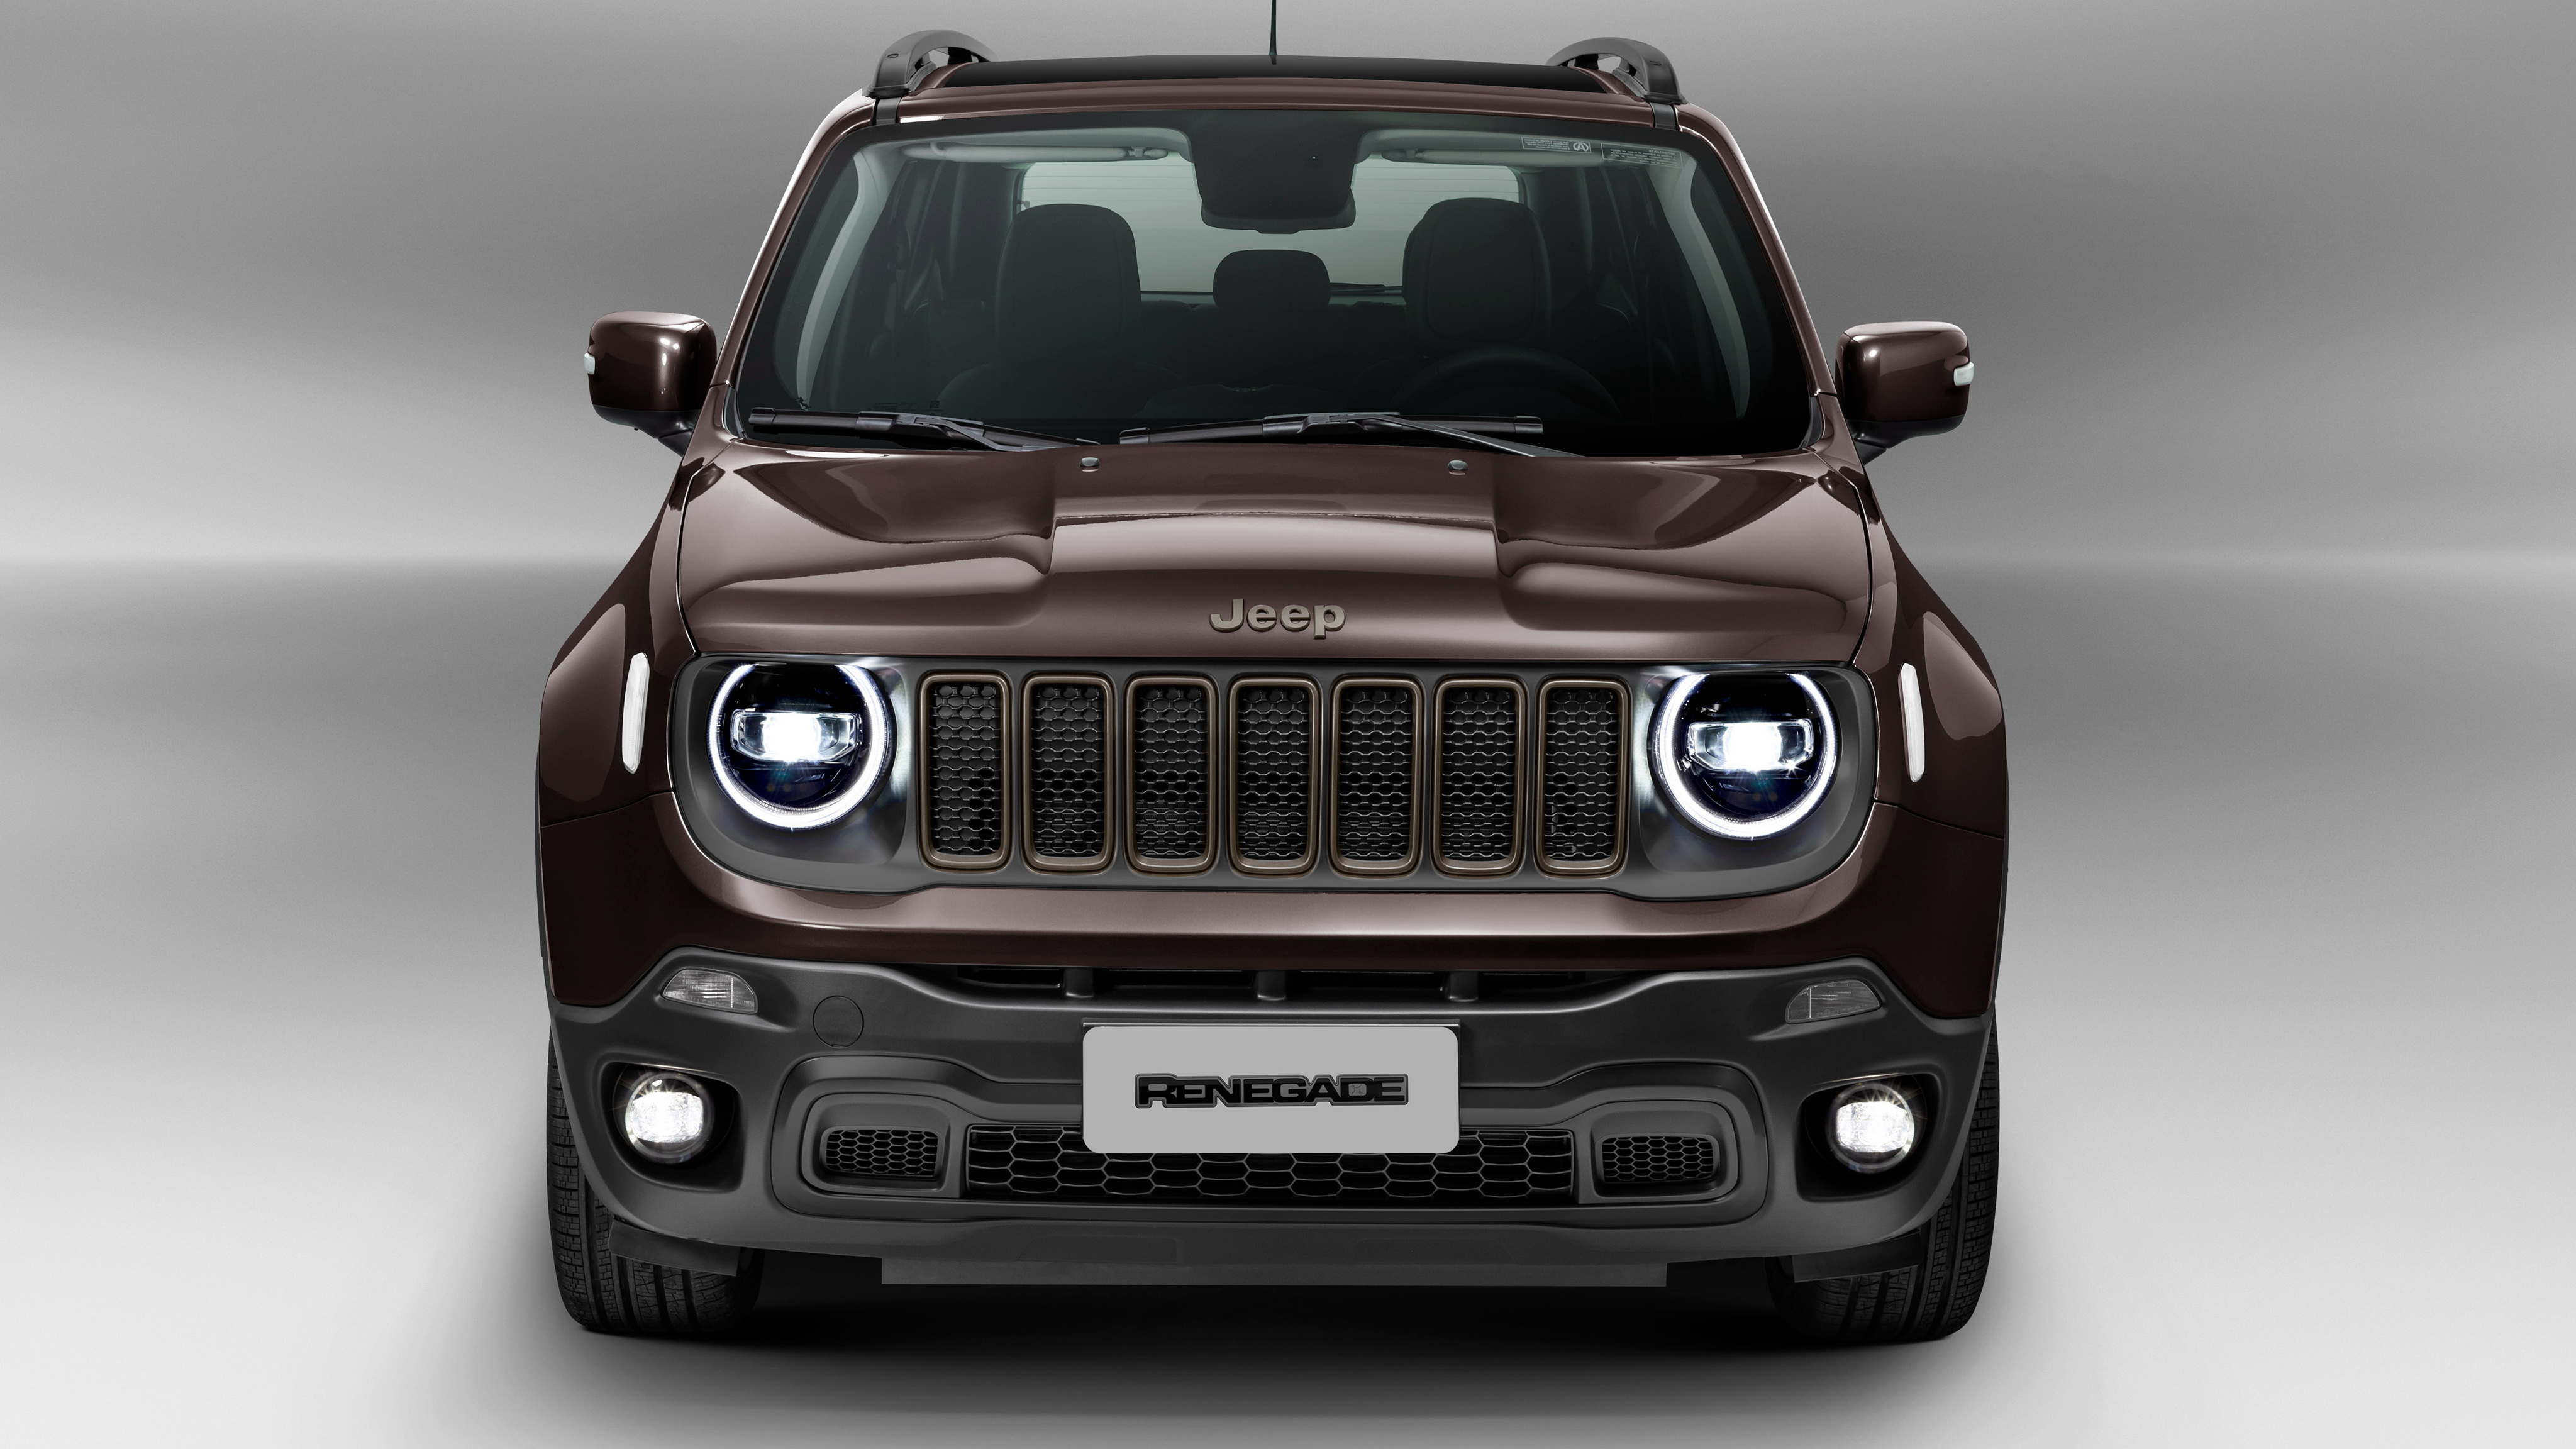 4k jeep renegade limited wallpapers ultra resolutions hdcarwallpapers